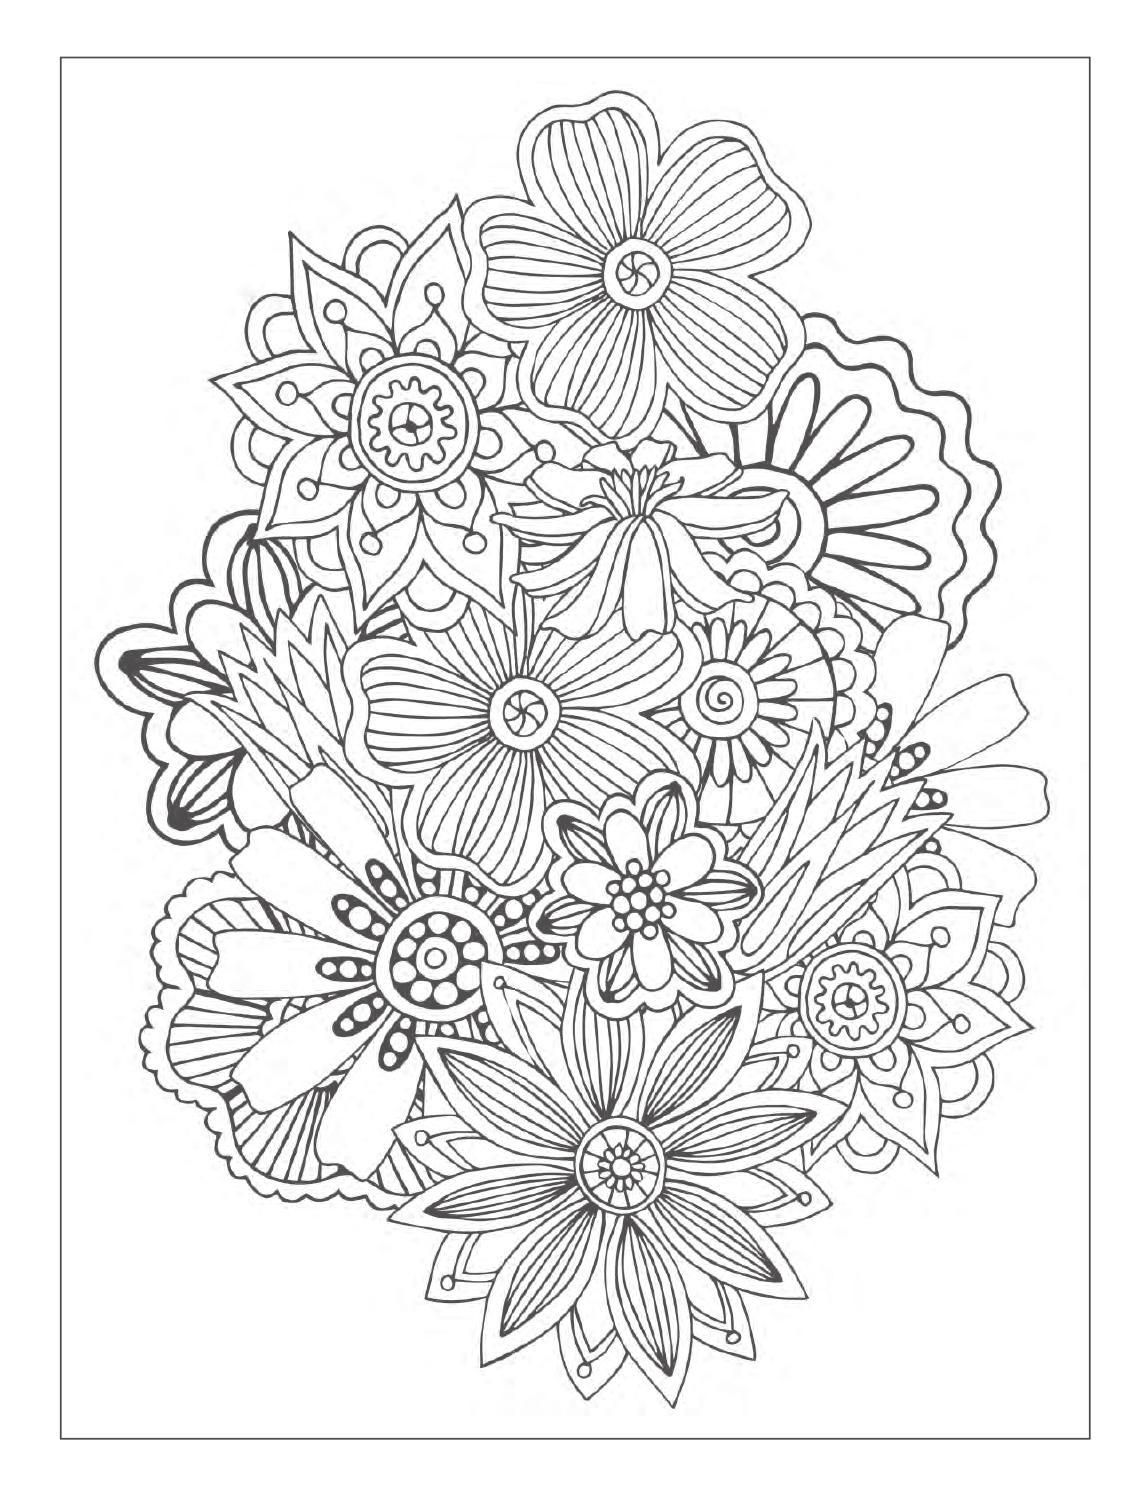 Beautiful Flowers Detailed Floral Designs Coloring Book Preview Abstract Coloring Pages Antistress Coloring Designs Coloring Books